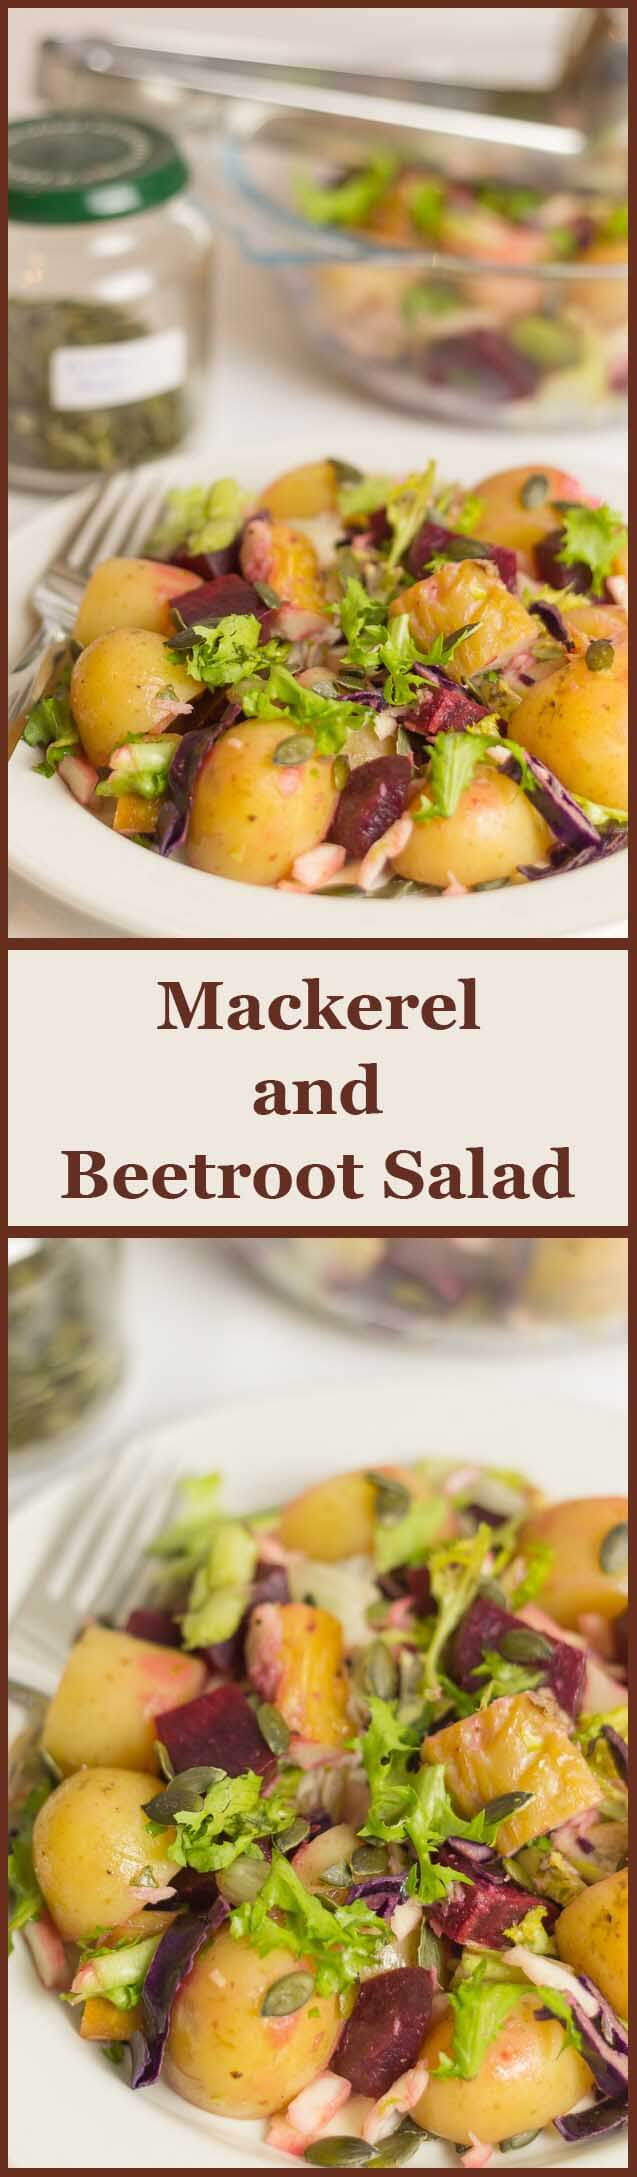 Rich in essential healthy oils, vitamins and minerals, this mackerel beetroot salad suggested packed lunch option is perfect to keep you healthy and full.